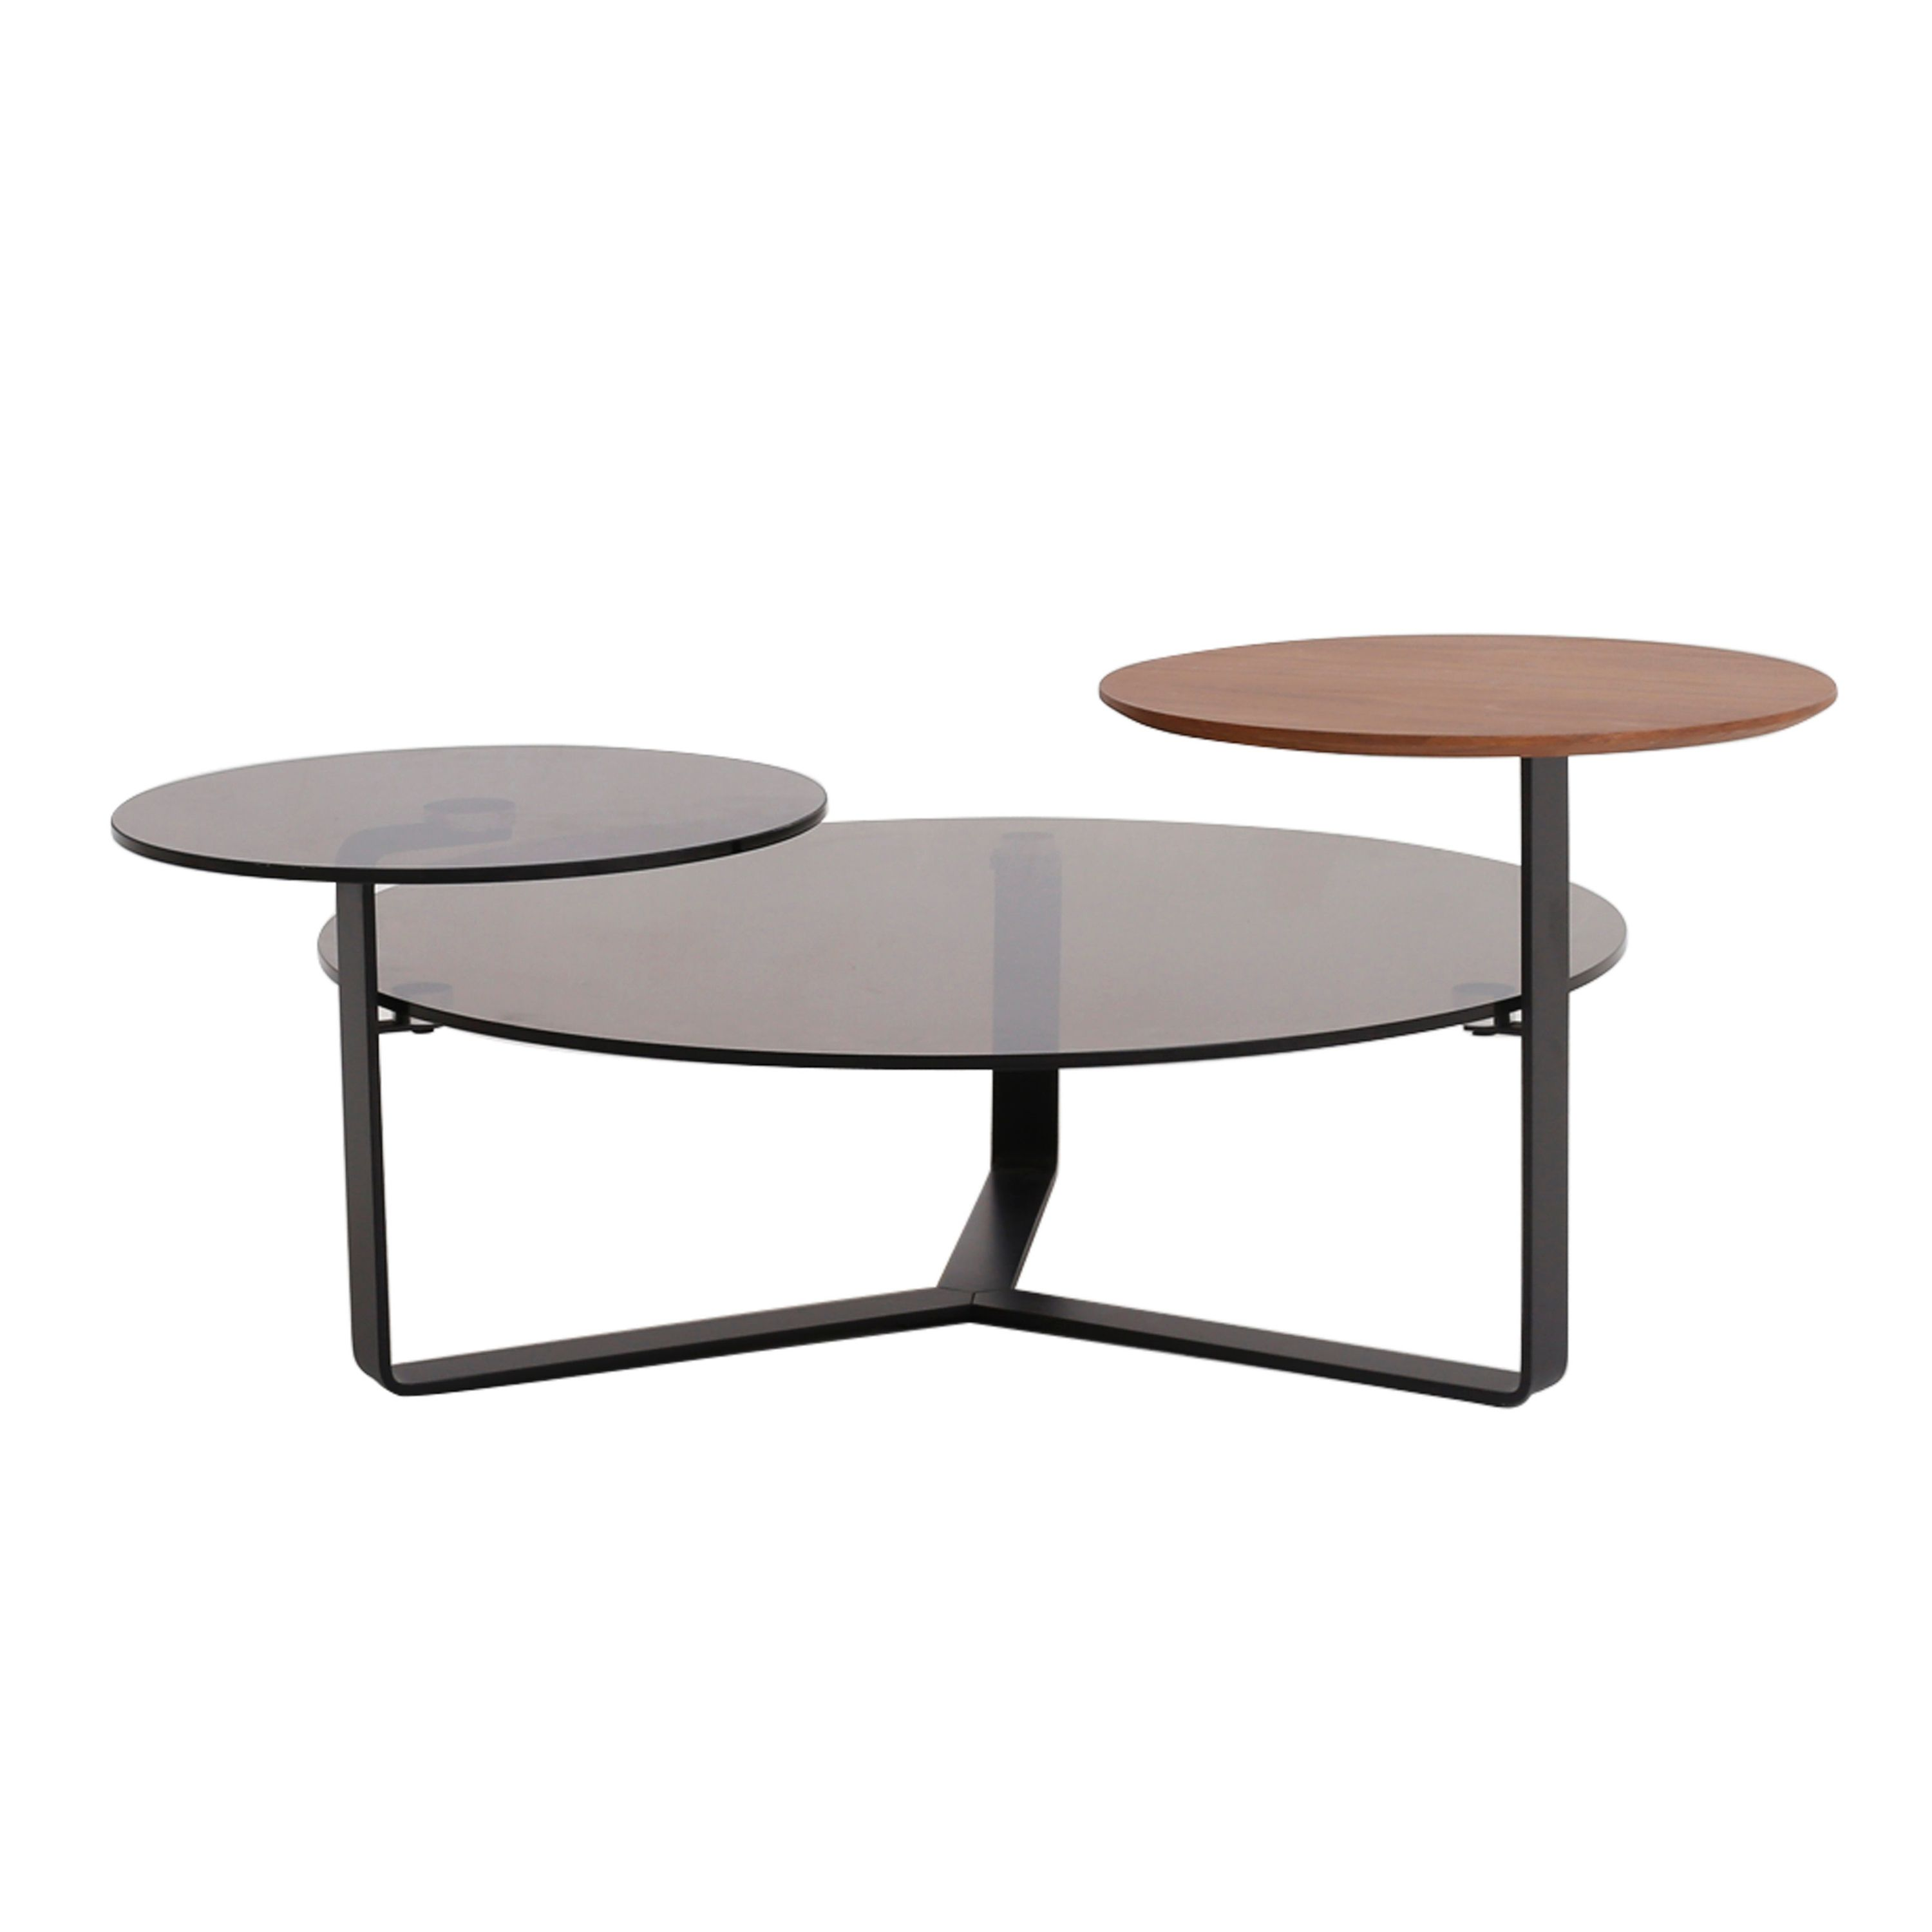 Norris Kd Round Coffee Table Black Frame Glass Walnut 1030004 Coffee Table Table Round Coffee Table [ 3000 x 3000 Pixel ]